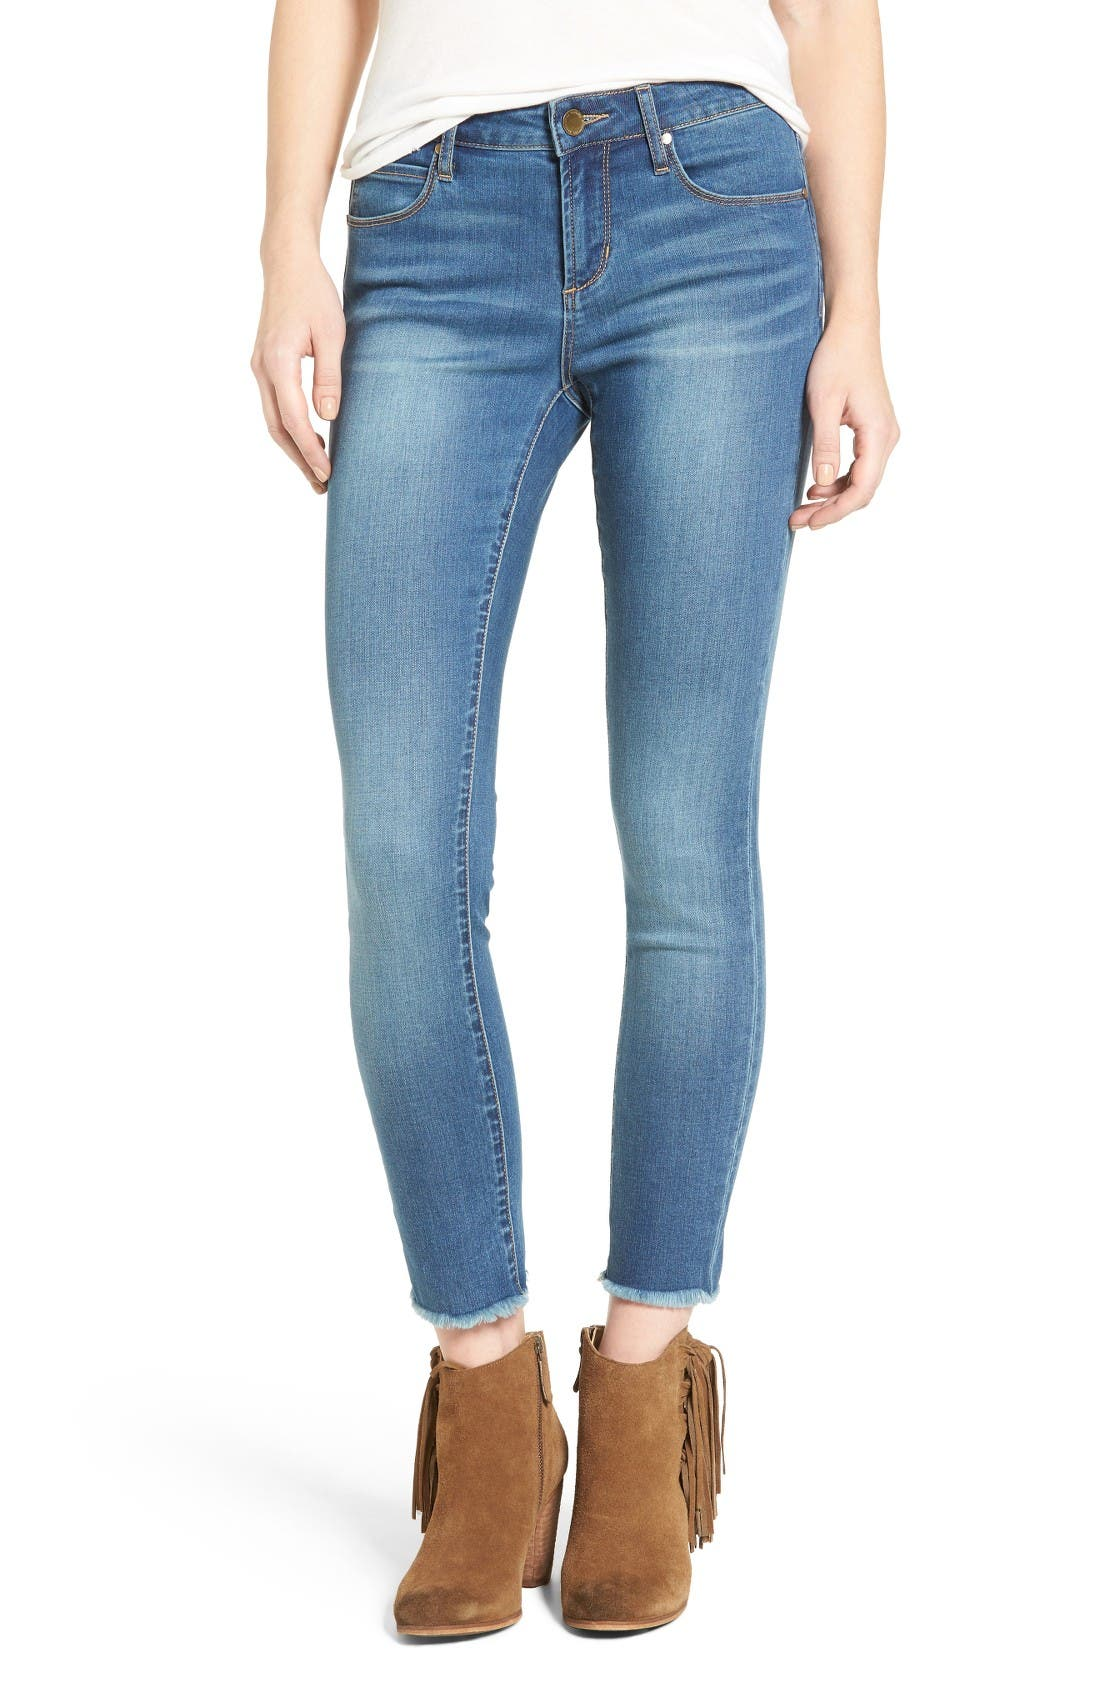 Articles of Society Carly Crop Skinny Jeans